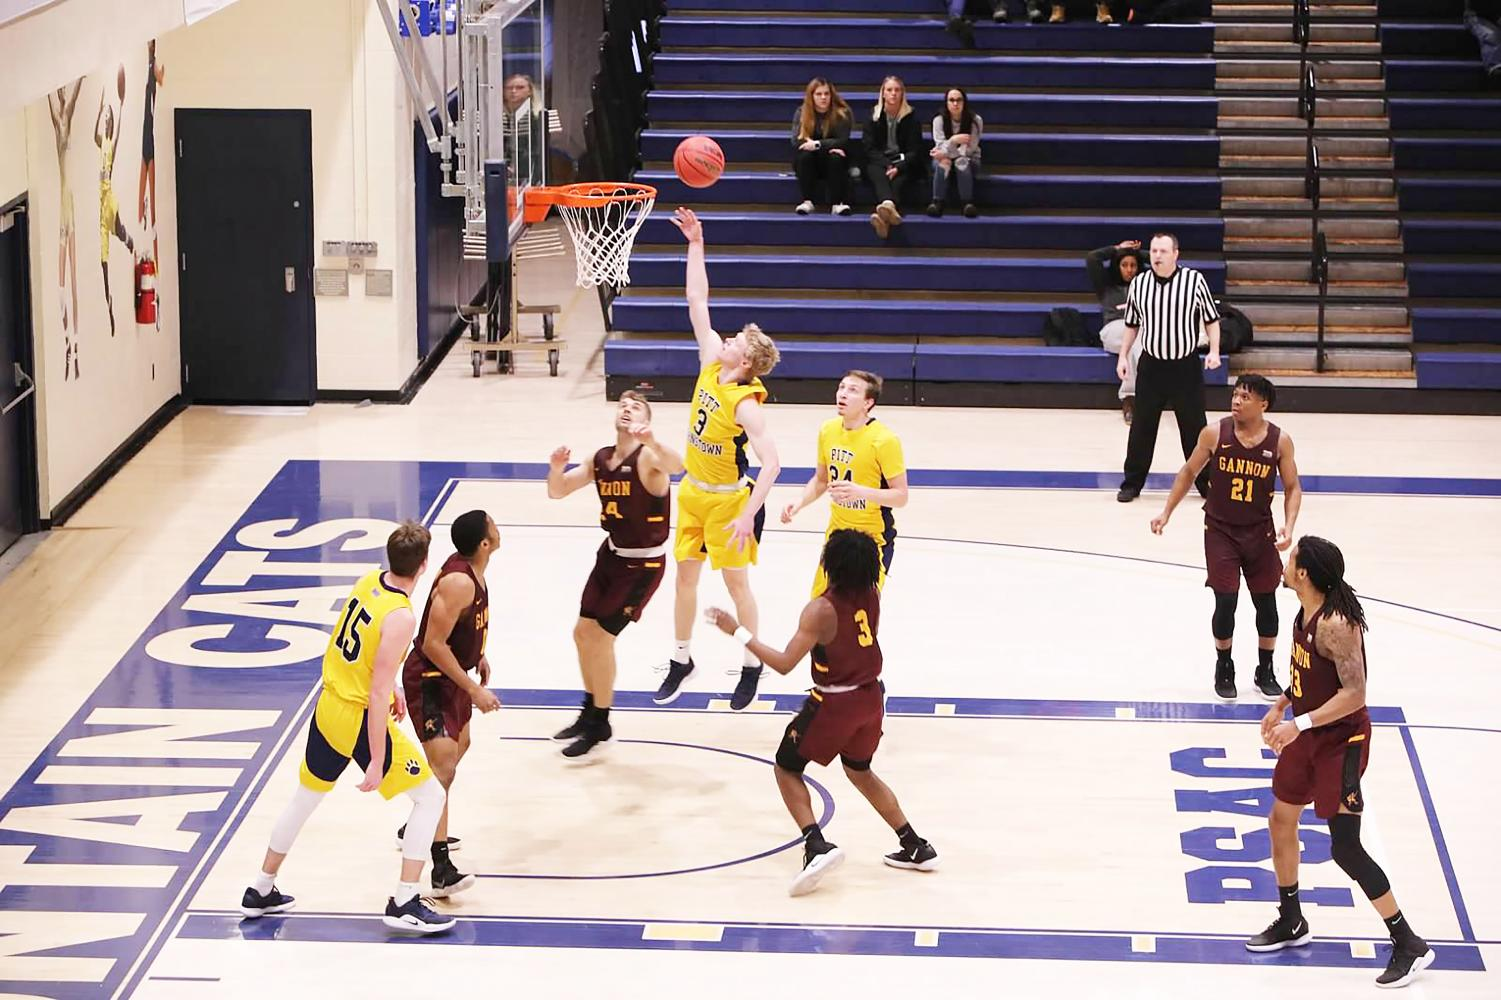 Joe Batt scores with little challenge to help the Mountain Cats defeat the Golden Knights by 11 points Feb. 2 at the Wellness Center.